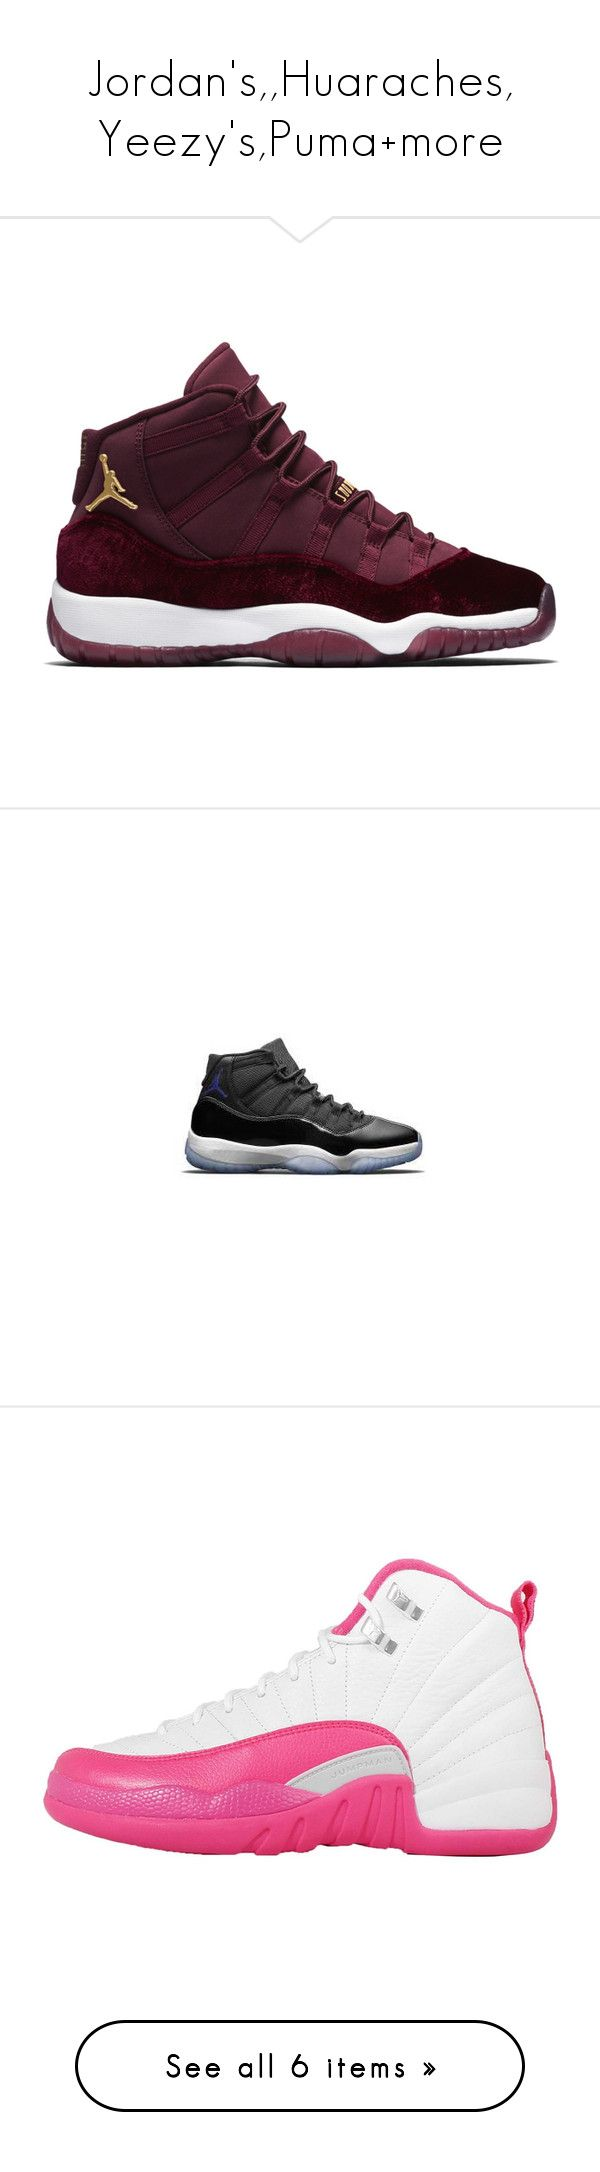 """Jordan's,,Huaraches, Yeezy's,Puma+more"" by briyannaelainhoy on Polyvore featuring shoes, sneakers, jordans, nike, mesh sneakers, mesh shoes, nike trainers, nike sneakers, nike shoes and shoes."